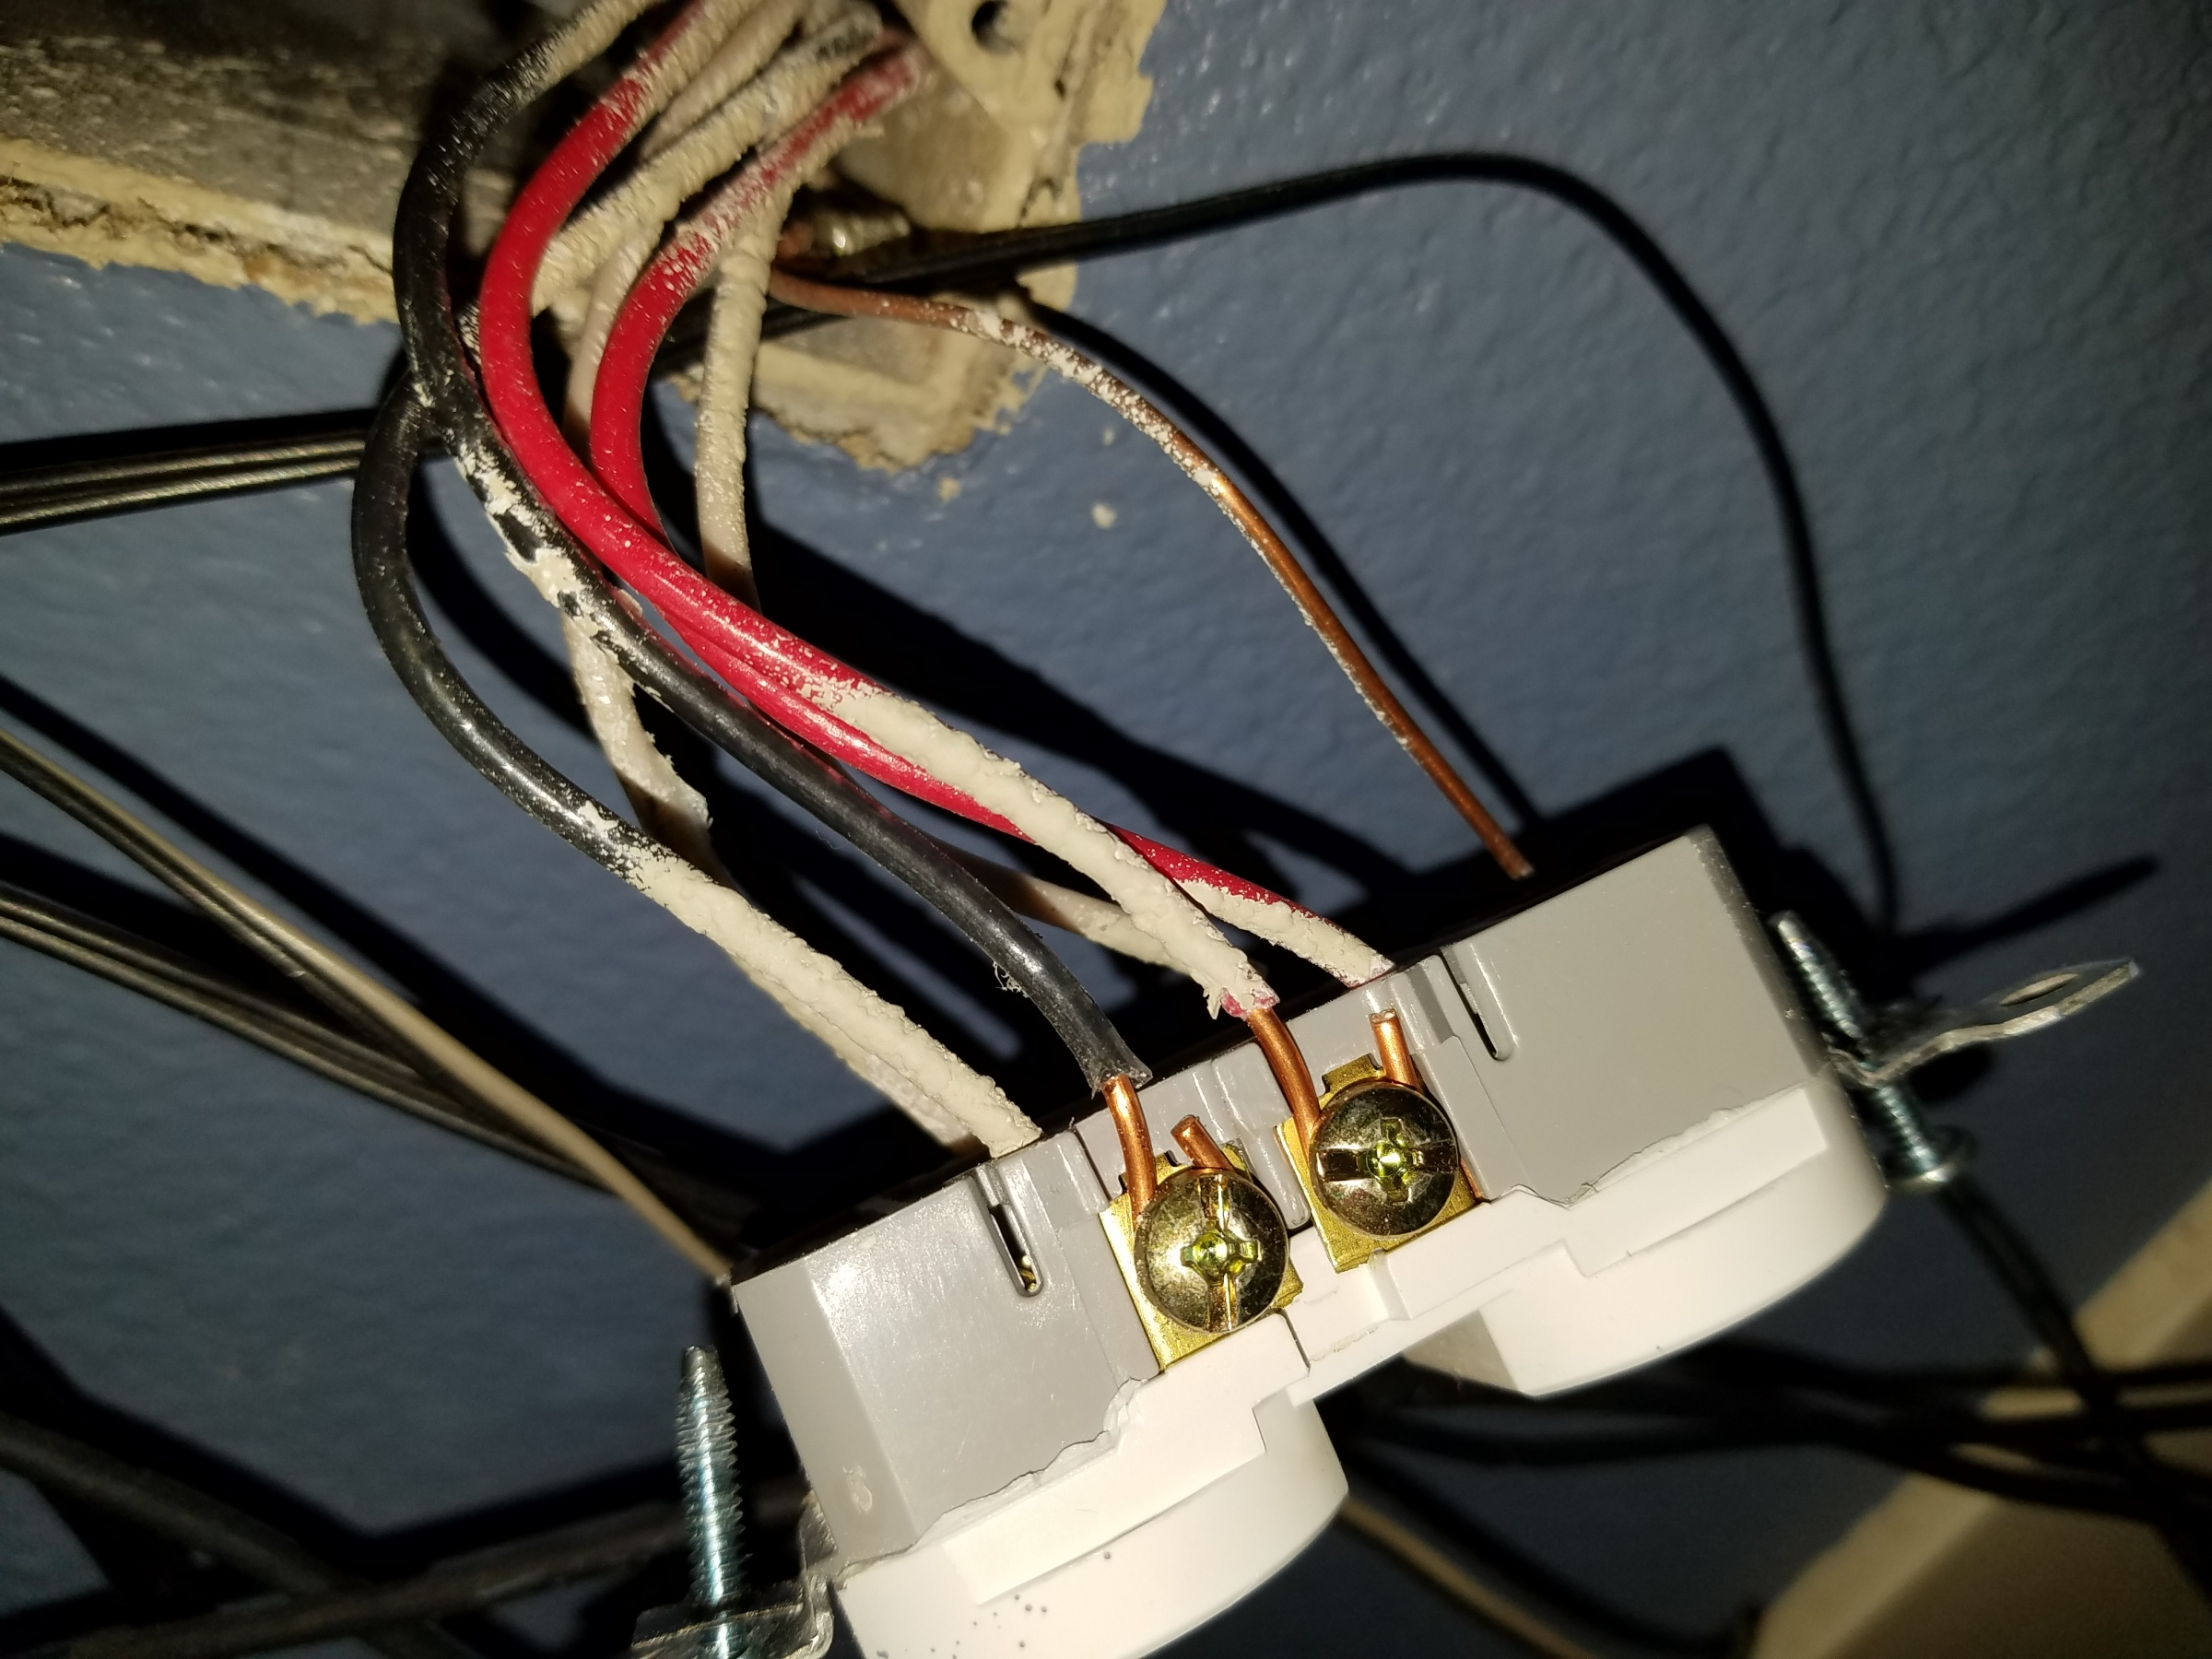 Removing lightswitch control half of outlet duplex-2019-01-26-19.33.32.jpg